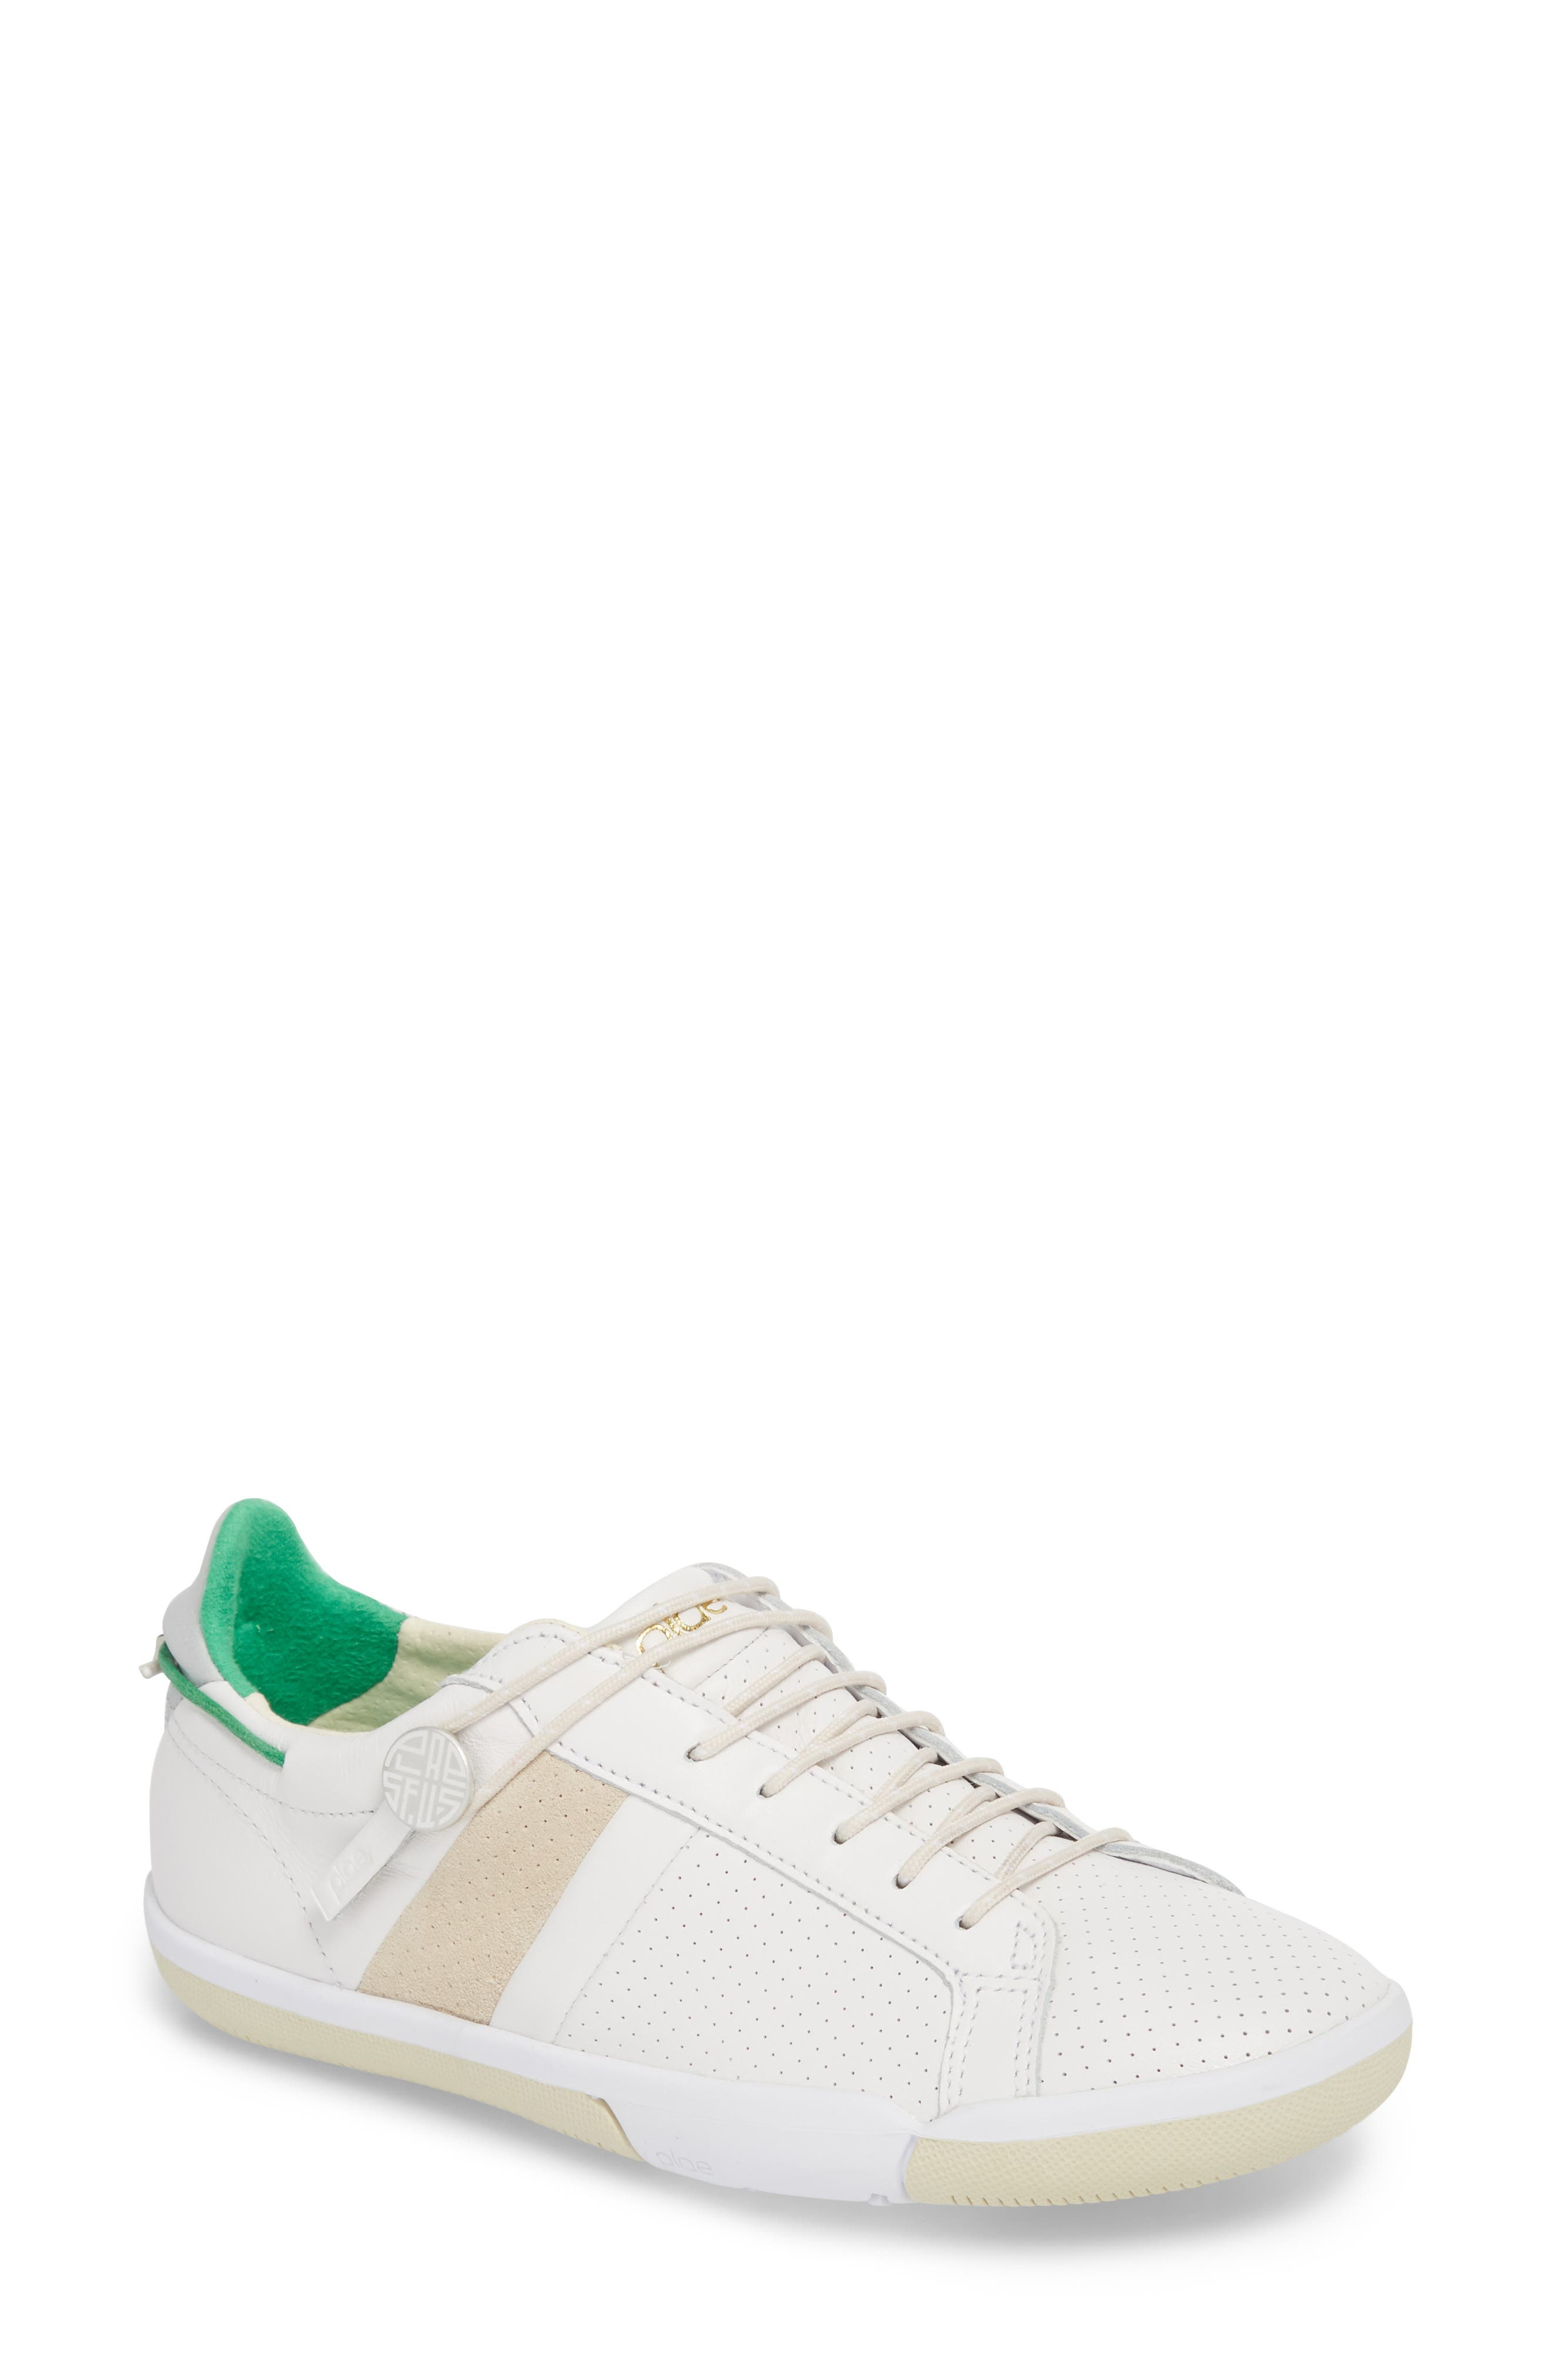 Mulberry Sneaker,                         Main,                         color, White Leather